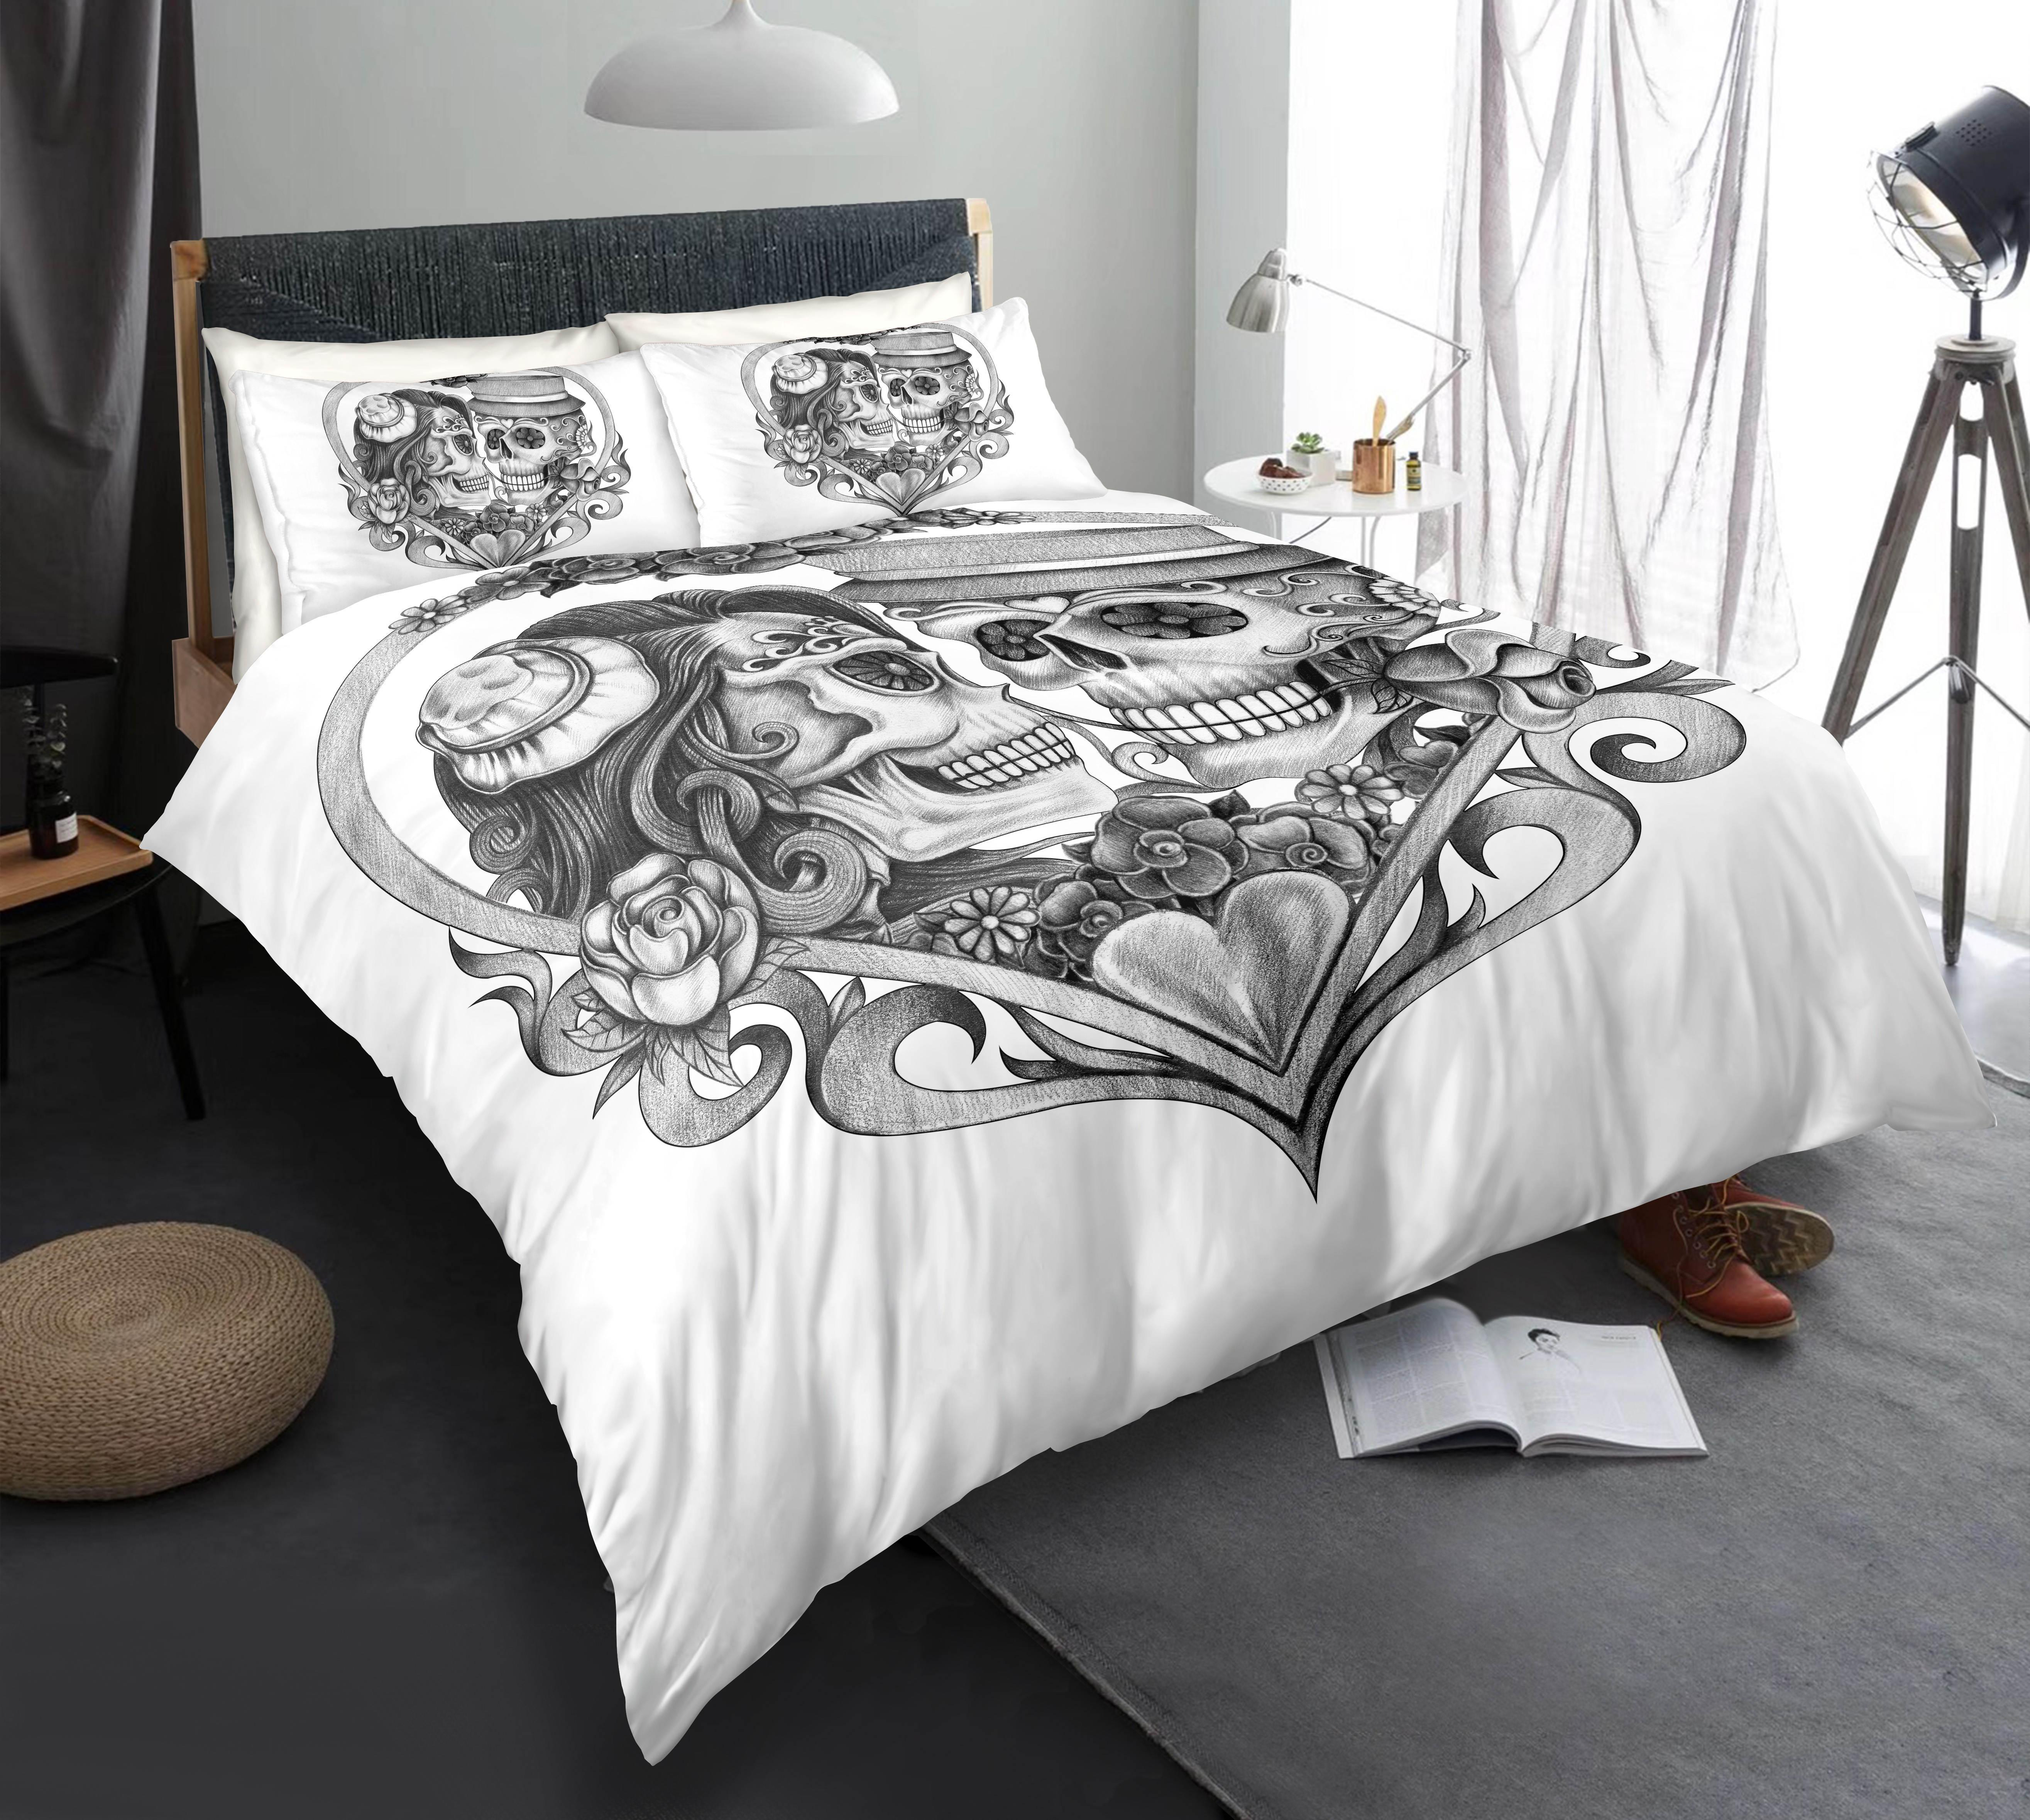 Black and White Skull Bedding Set King Size Love Scary 3D Duvet Cover Queen Home Dec Single Double Bed Set With Pillowcase 3pcs